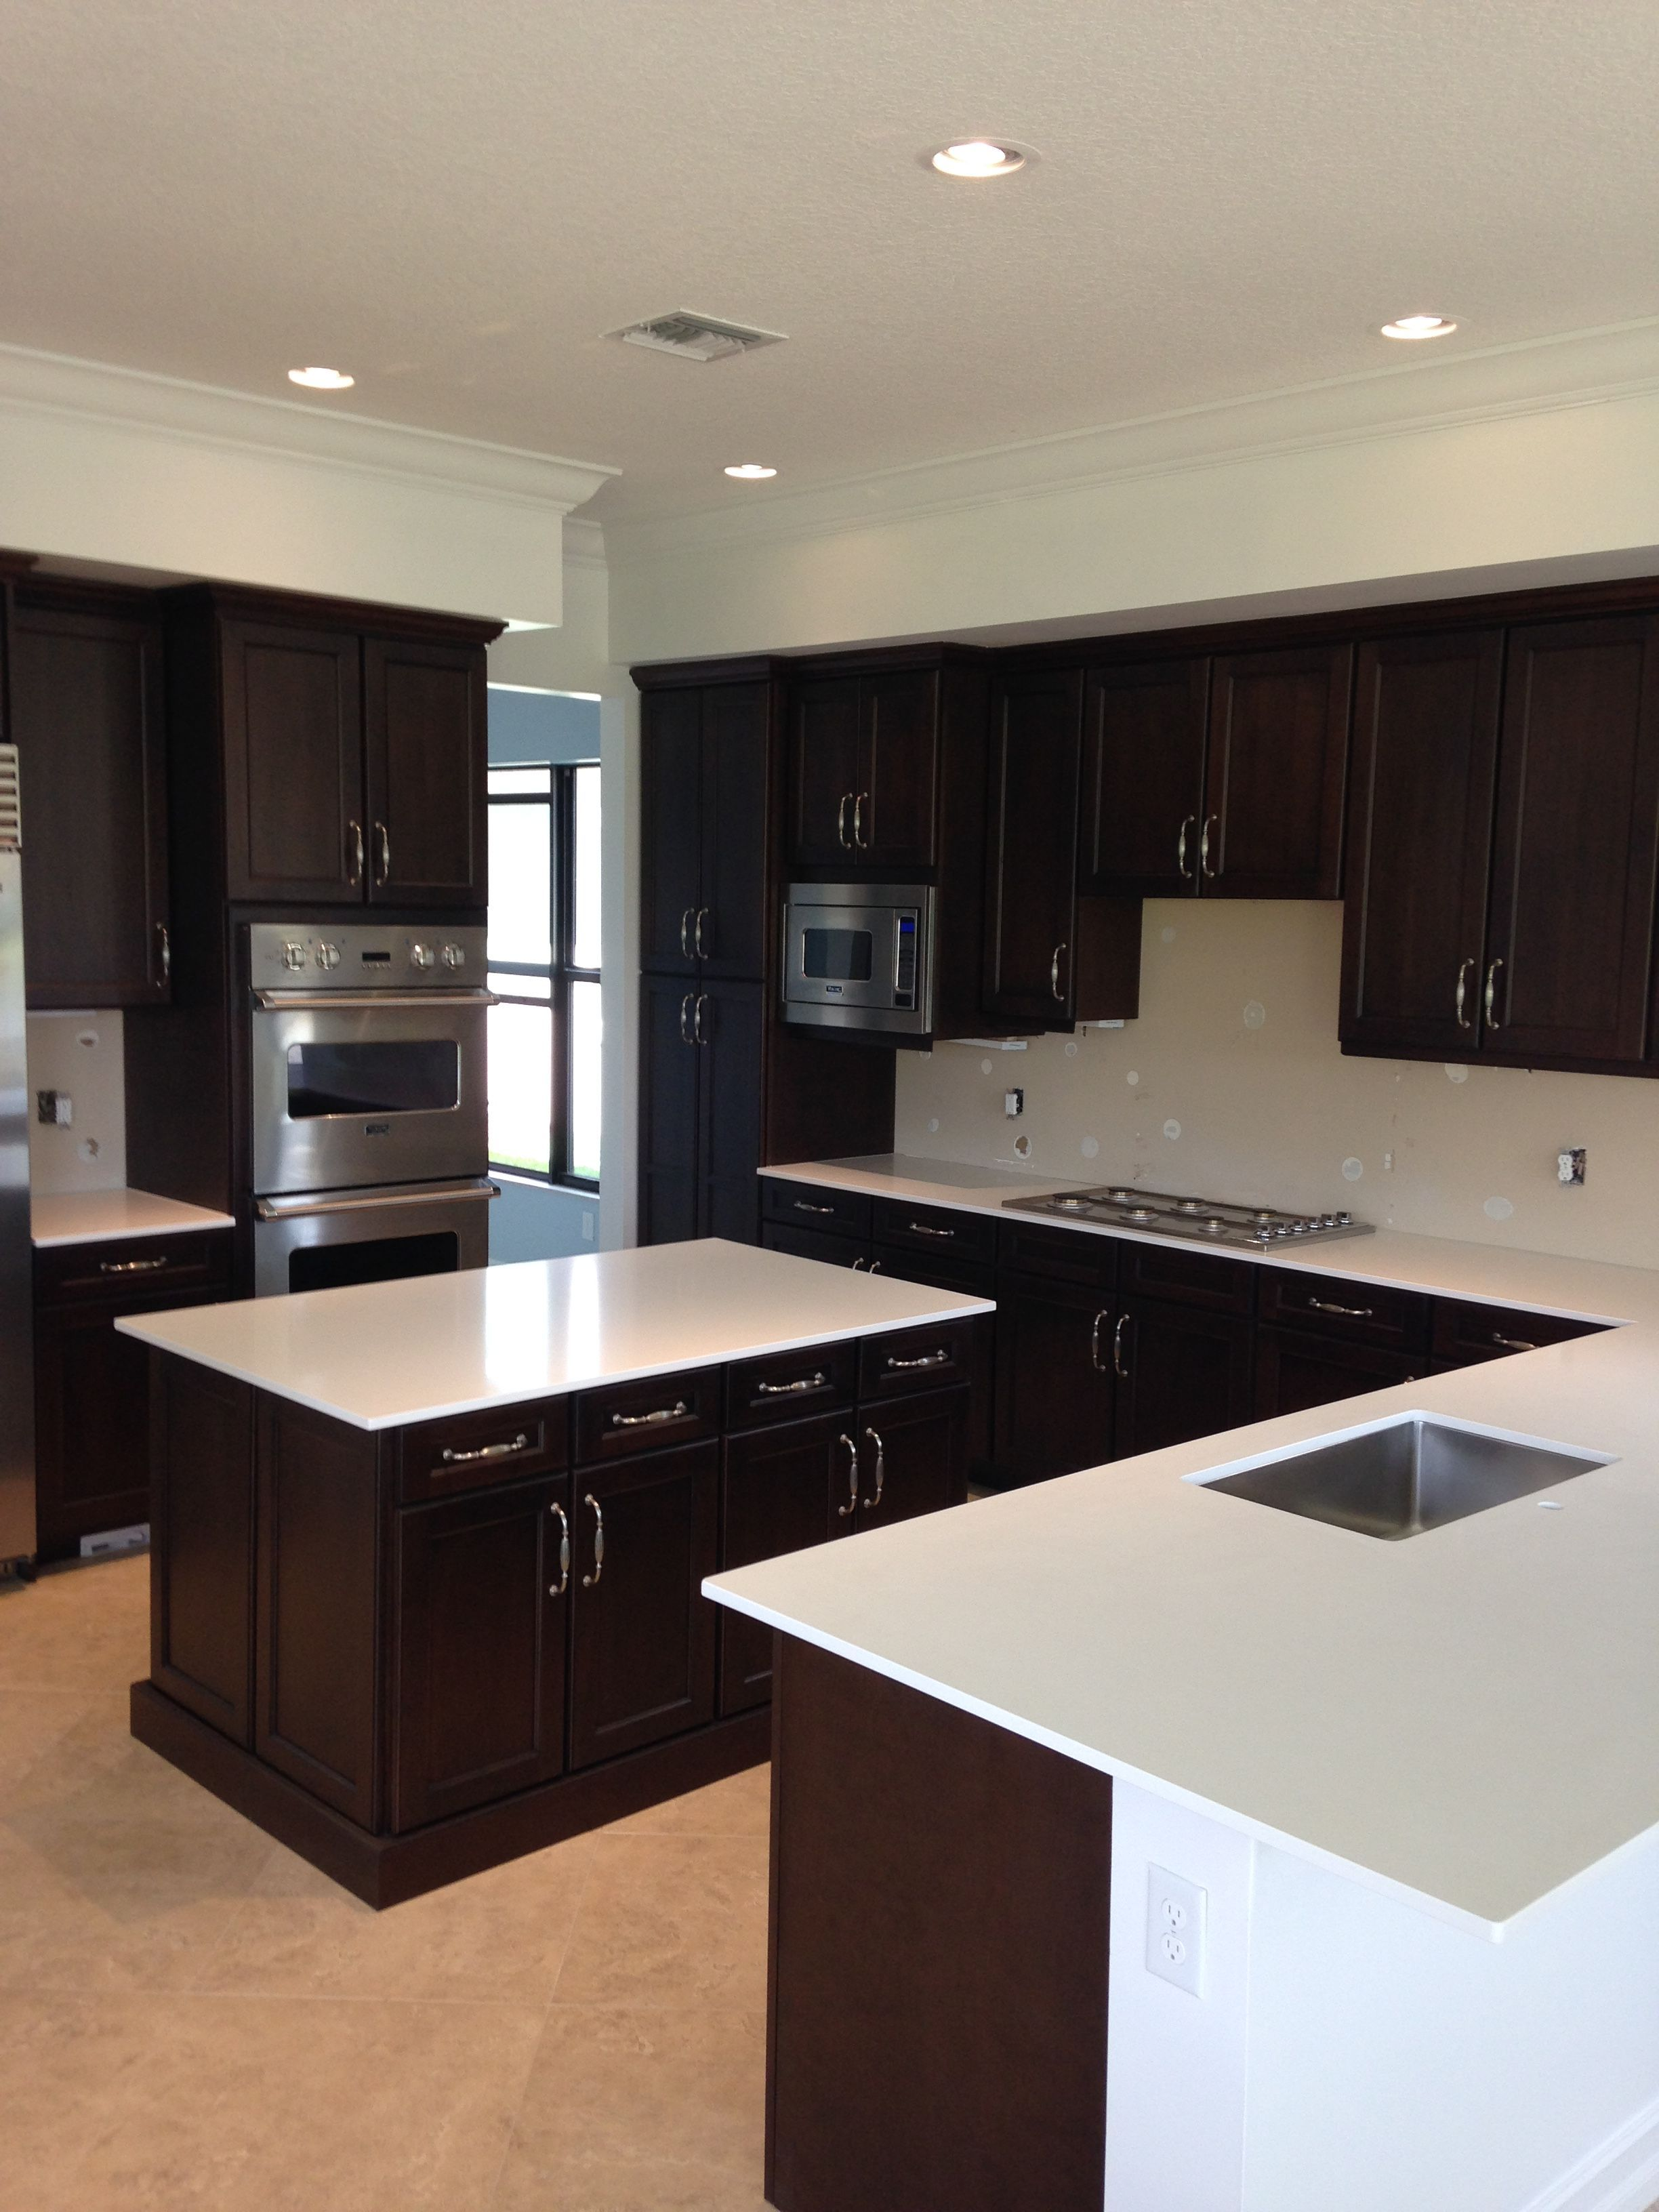 Best How To Choose New Kitchen Countertops When Kitchen 400 x 300